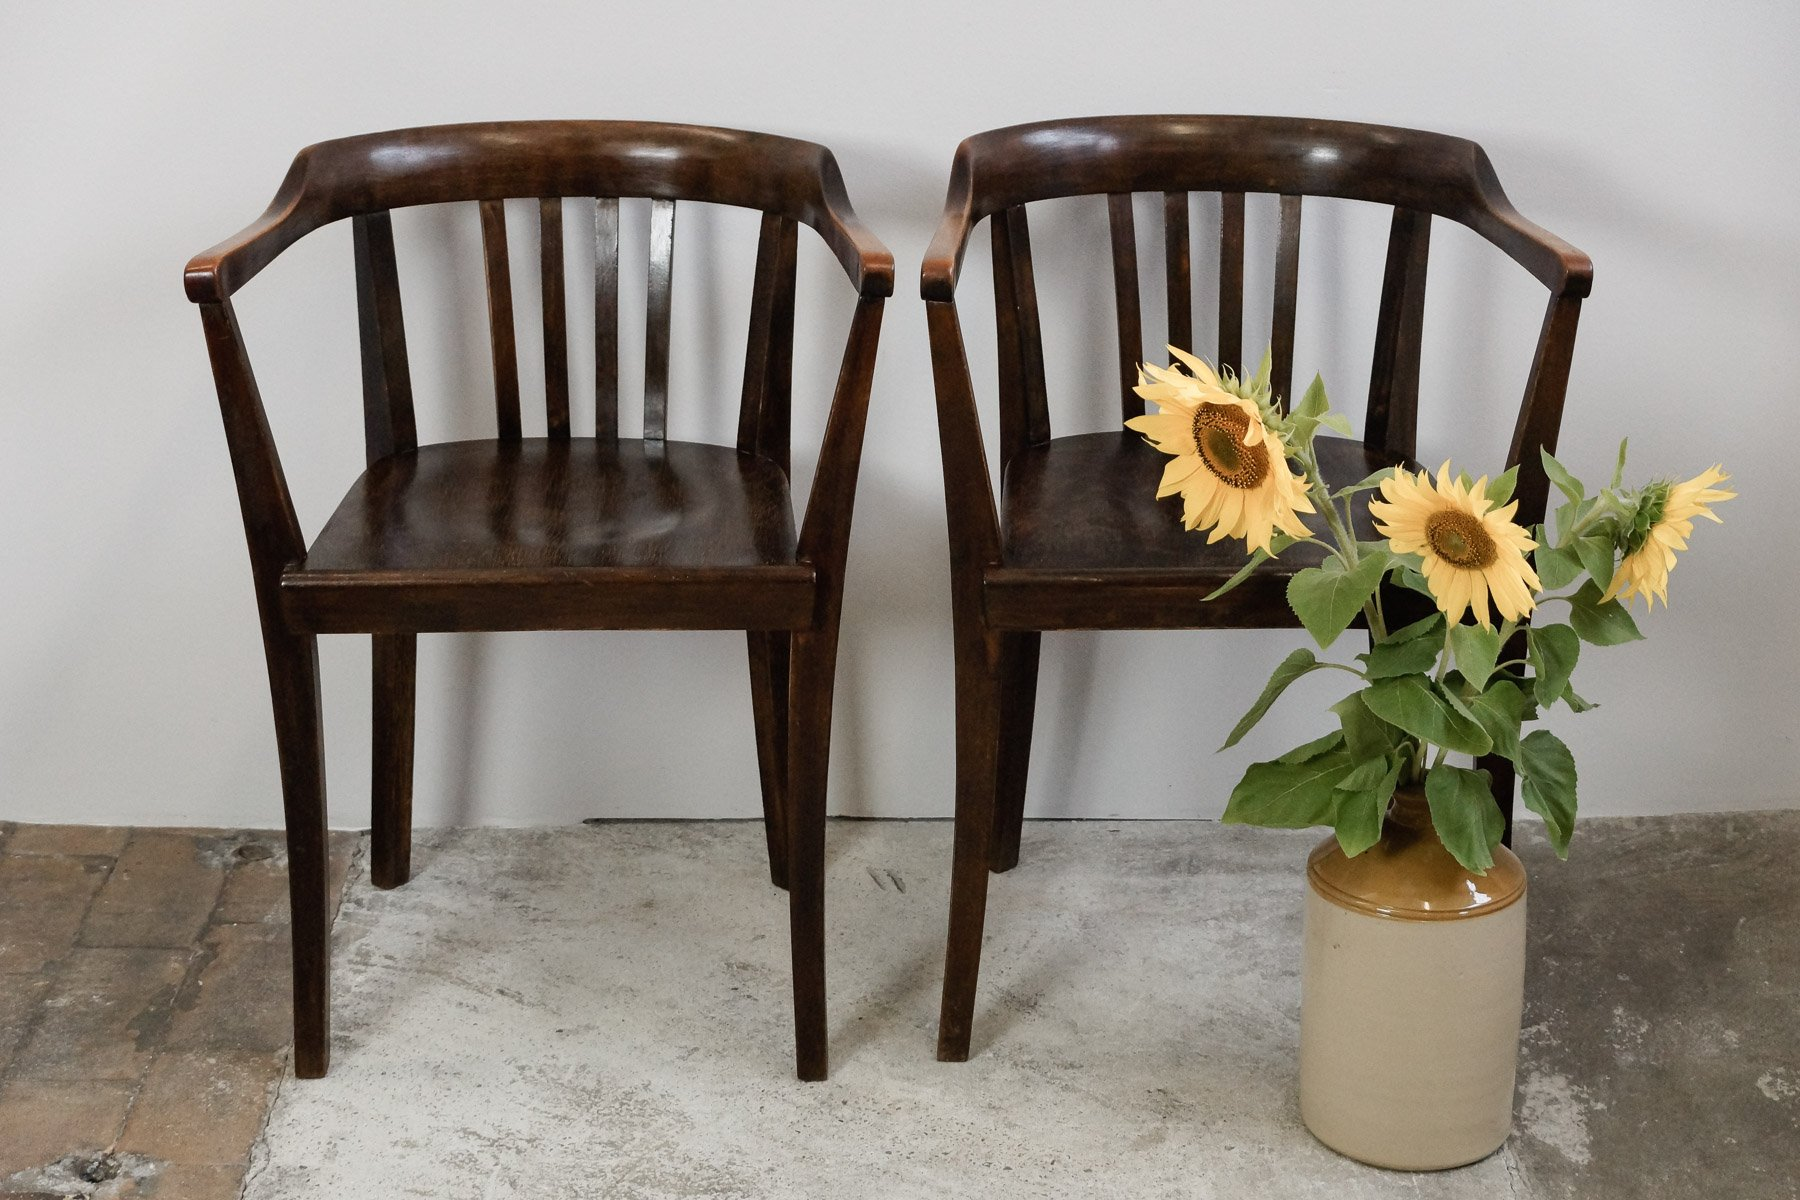 Vintage Bauhaus Desk Chairs in Bentwood Set of 2 for sale at Pamono